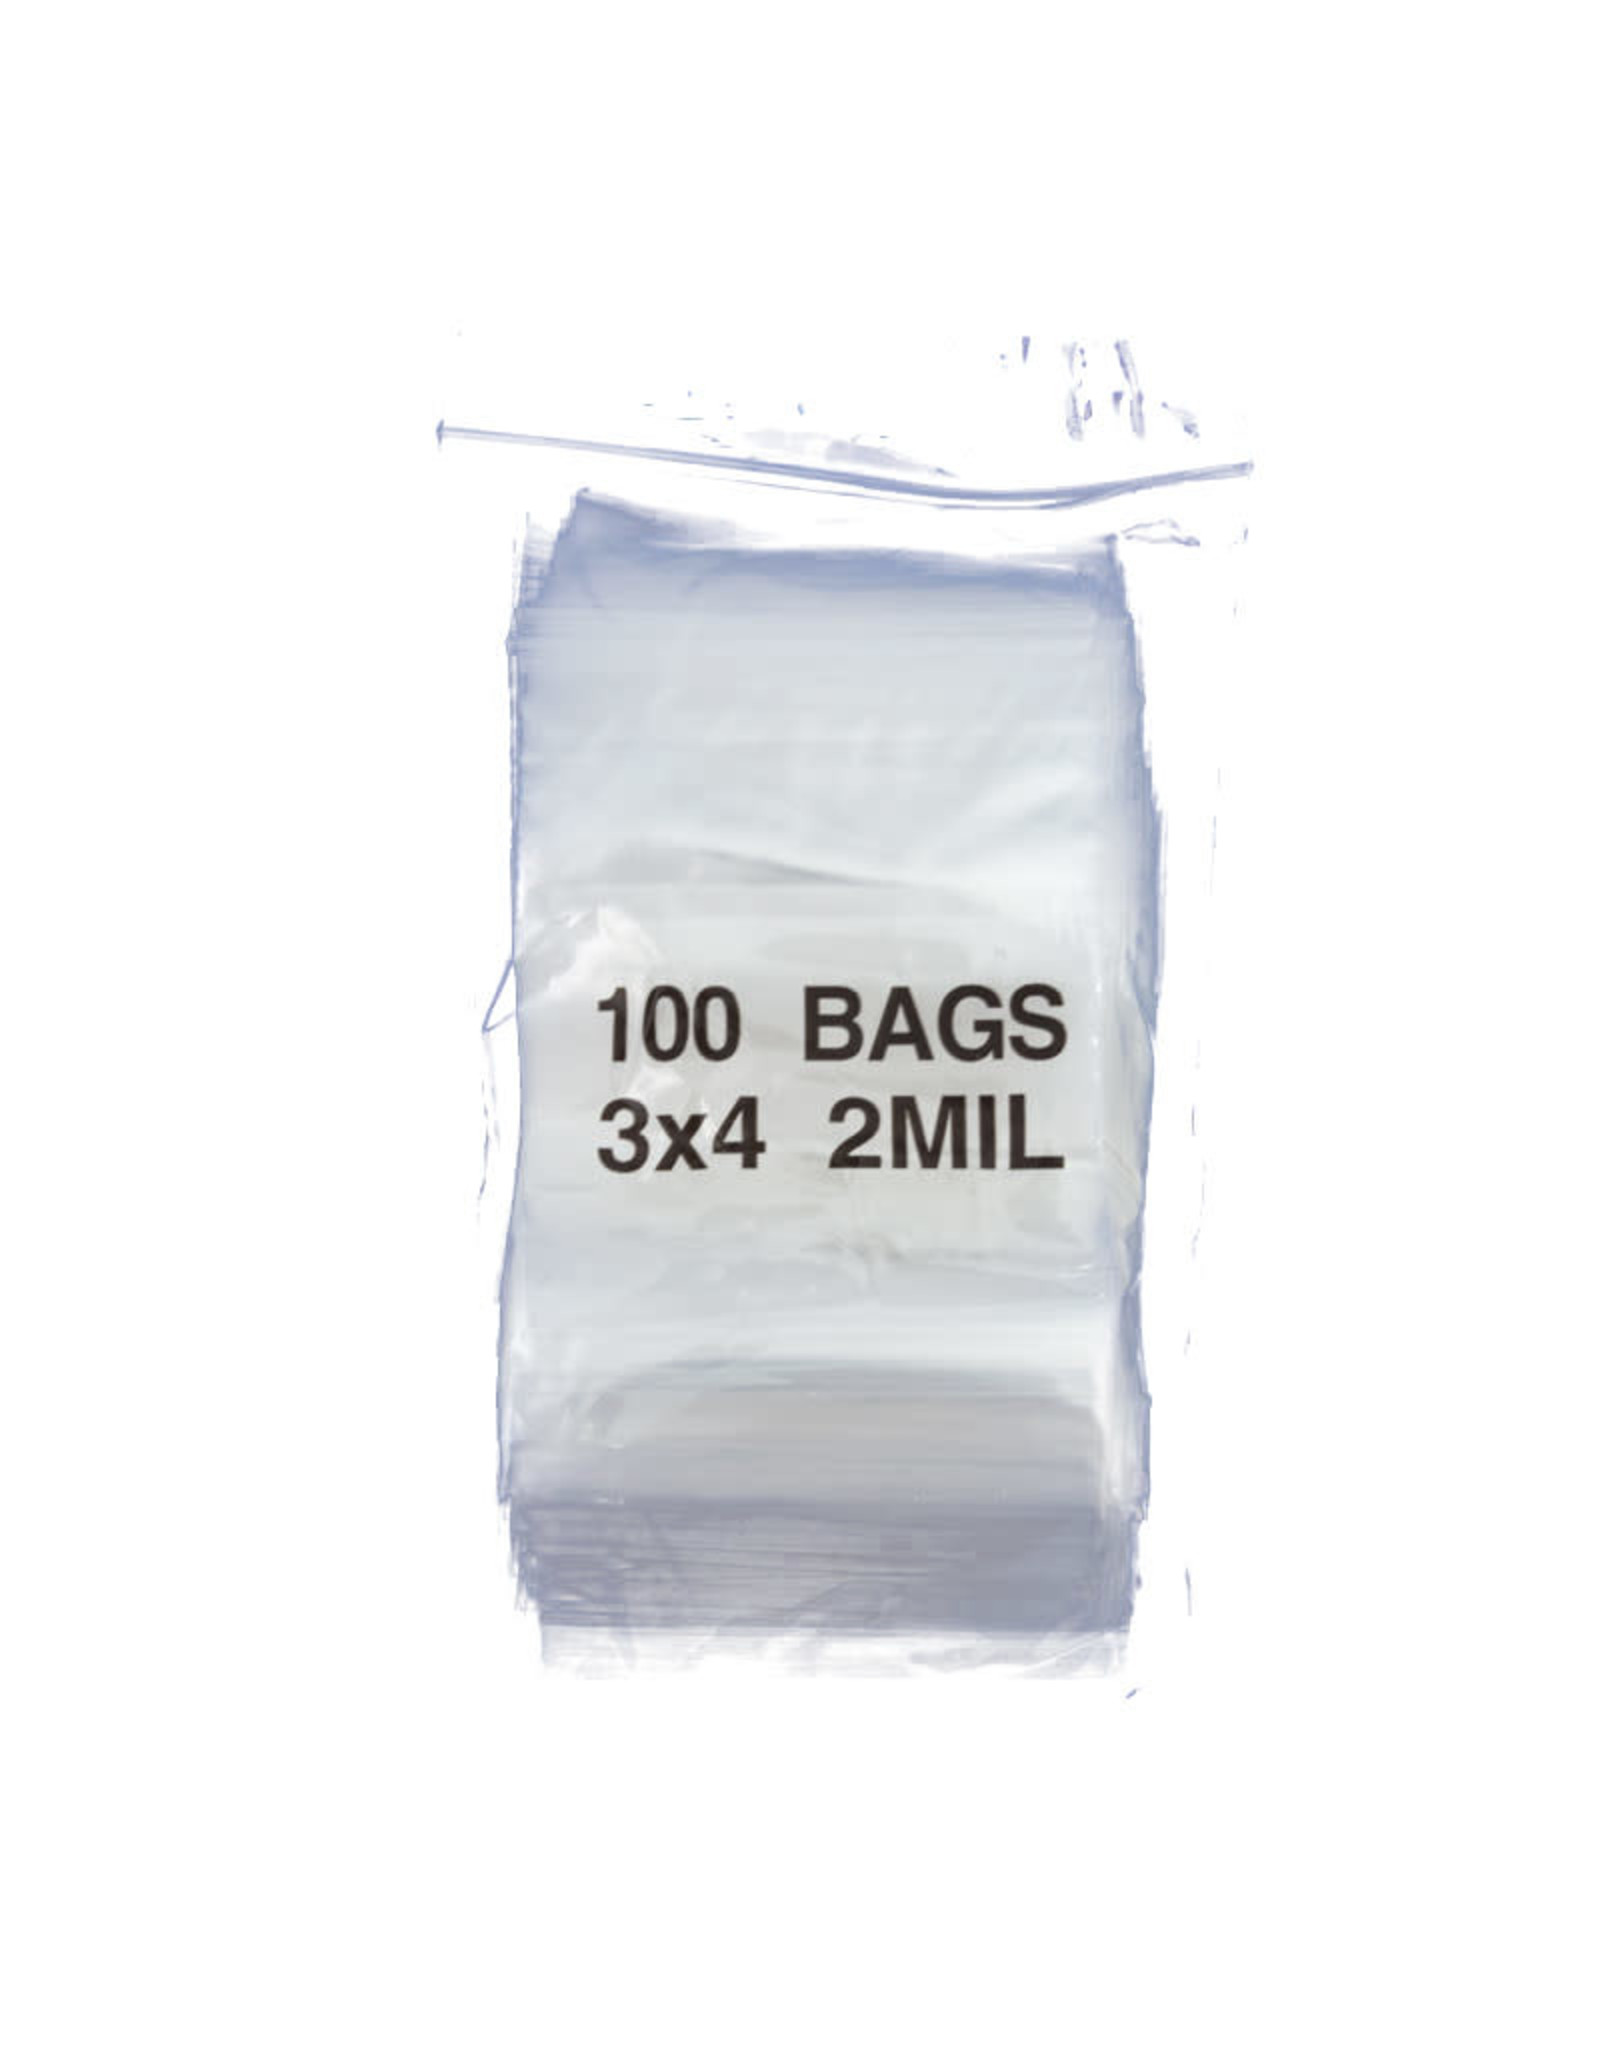 Game Night Games Plastic Storage Bags 3 x 4 inch (100)